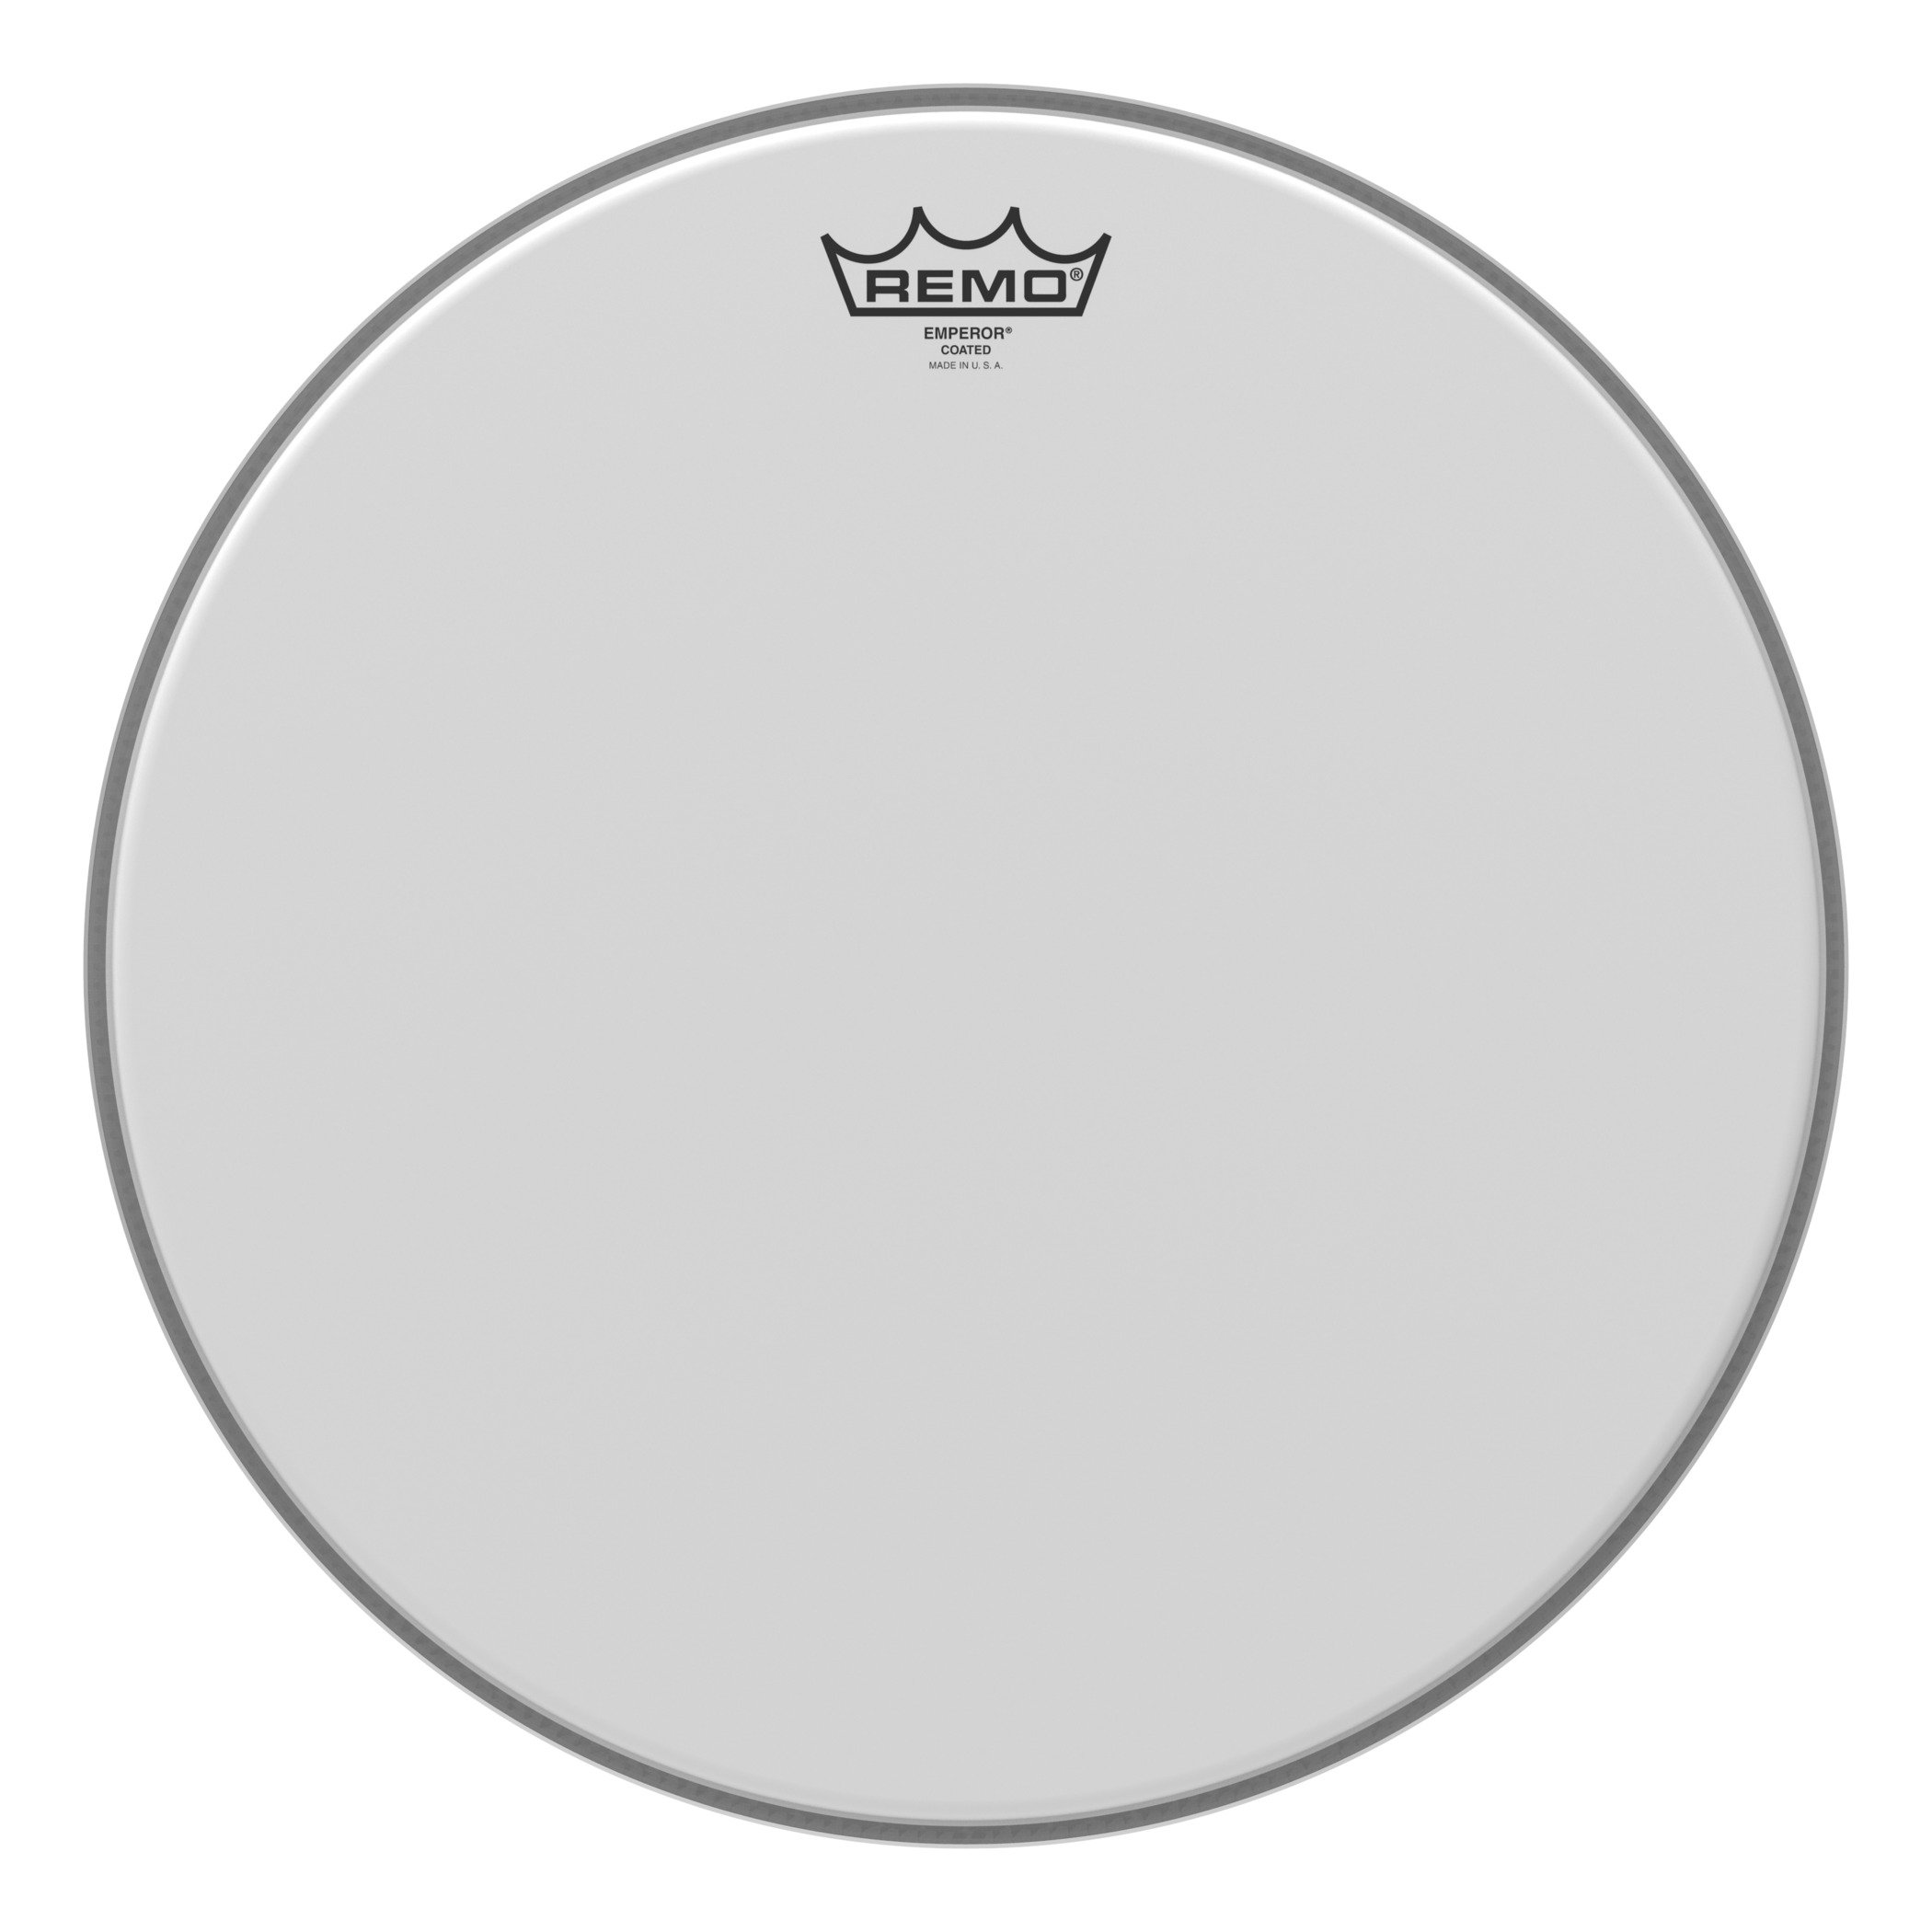 Remo Drum Set, Coated, 15-inch (BE-0115-00) by Remo